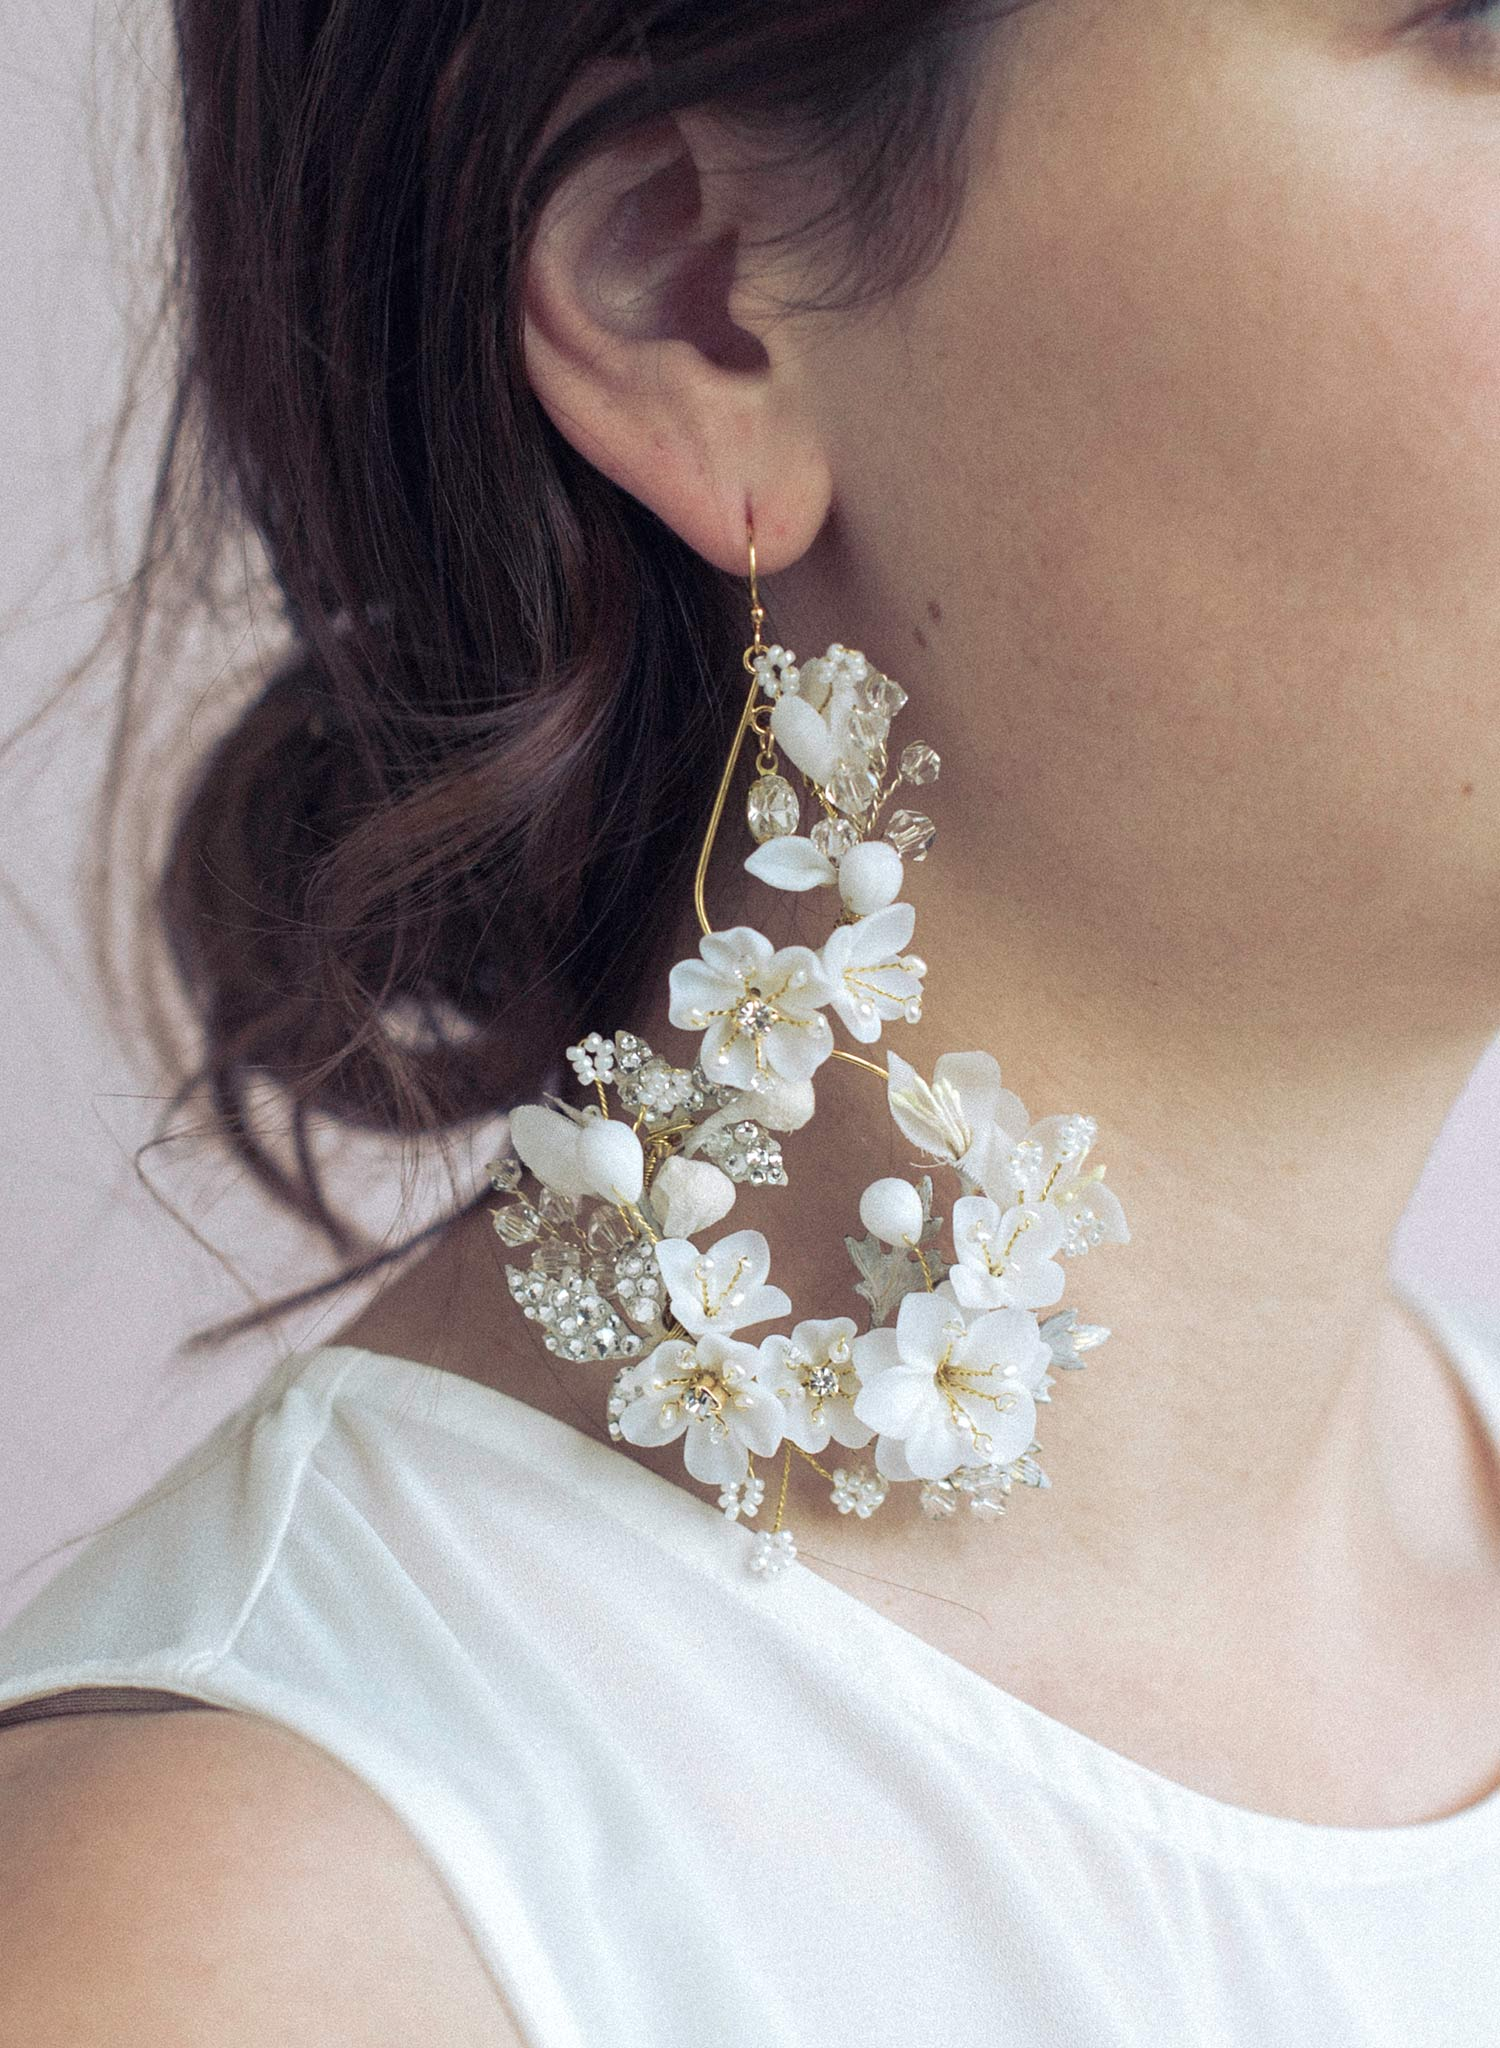 Decadent blossom chandelier earrings - Style #949